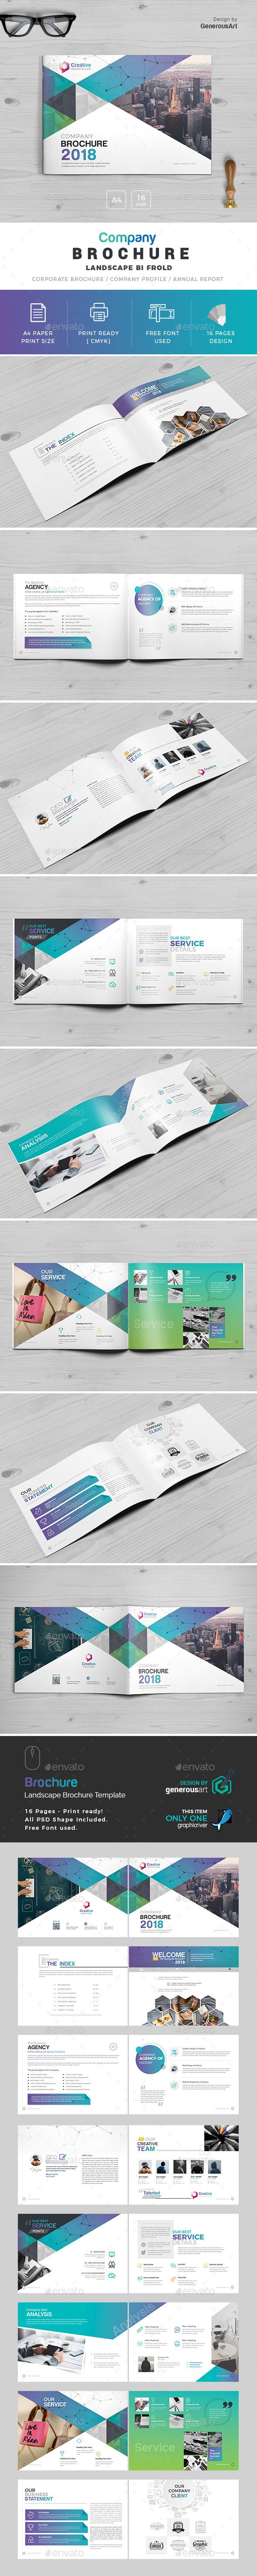 Best Brochure And Leaflet Images On   Corporate